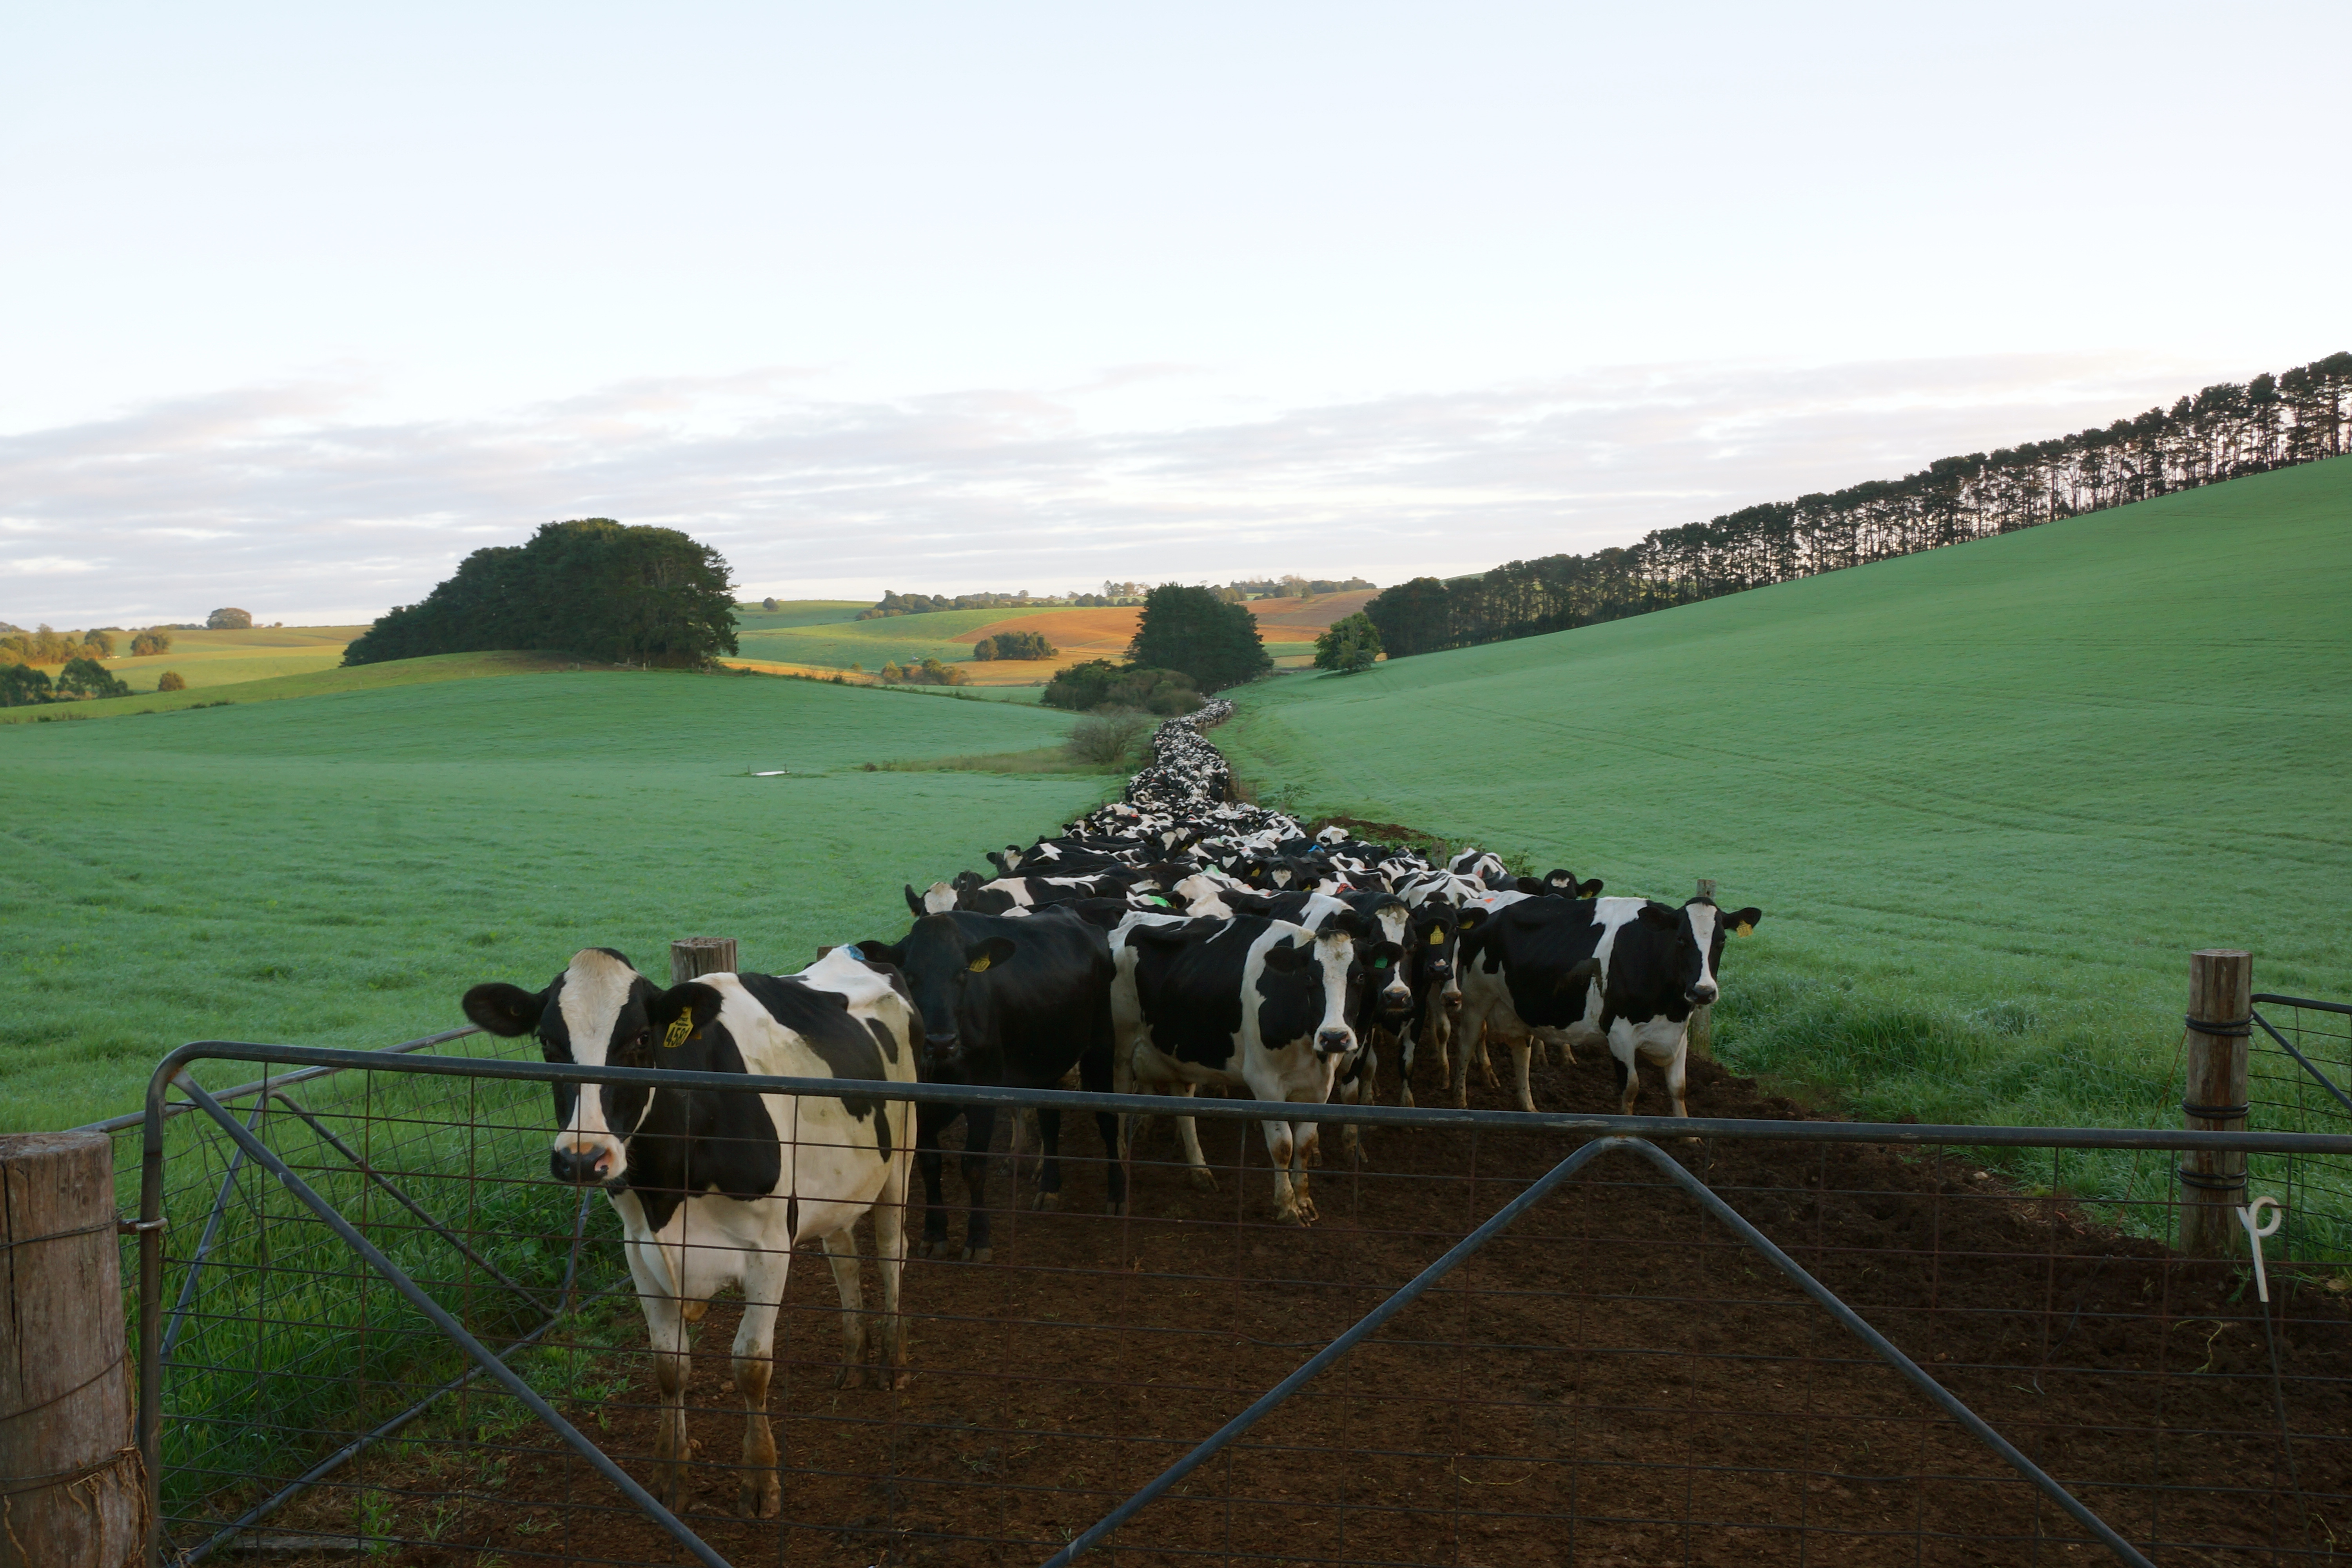 Dairy cattle waiting